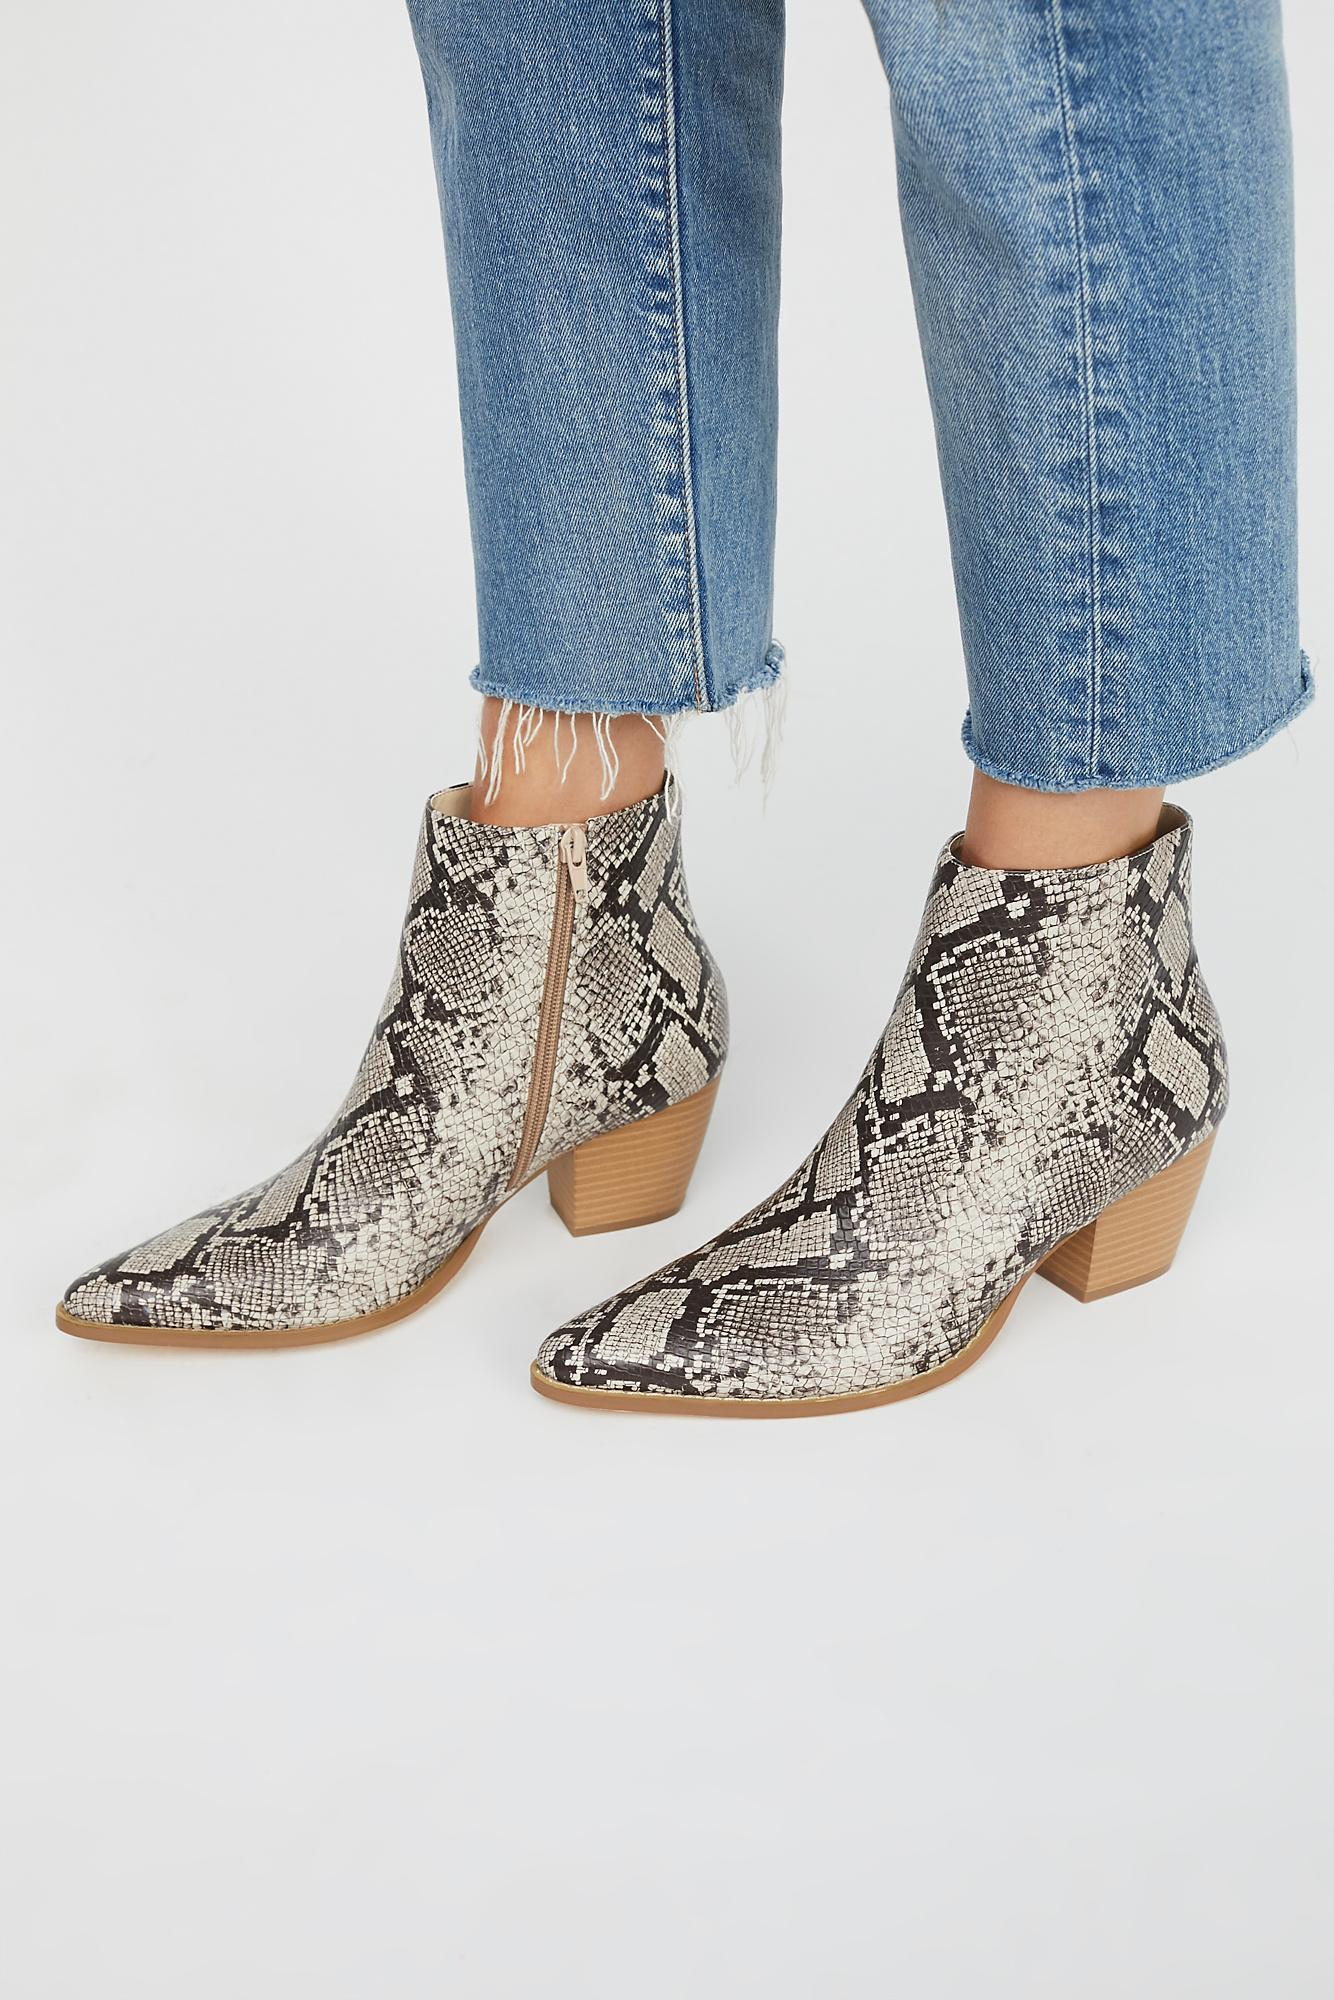 9b1abde3615 Free People - Multicolor Vegan Going West Boot By Matisse - Lyst. View  fullscreen